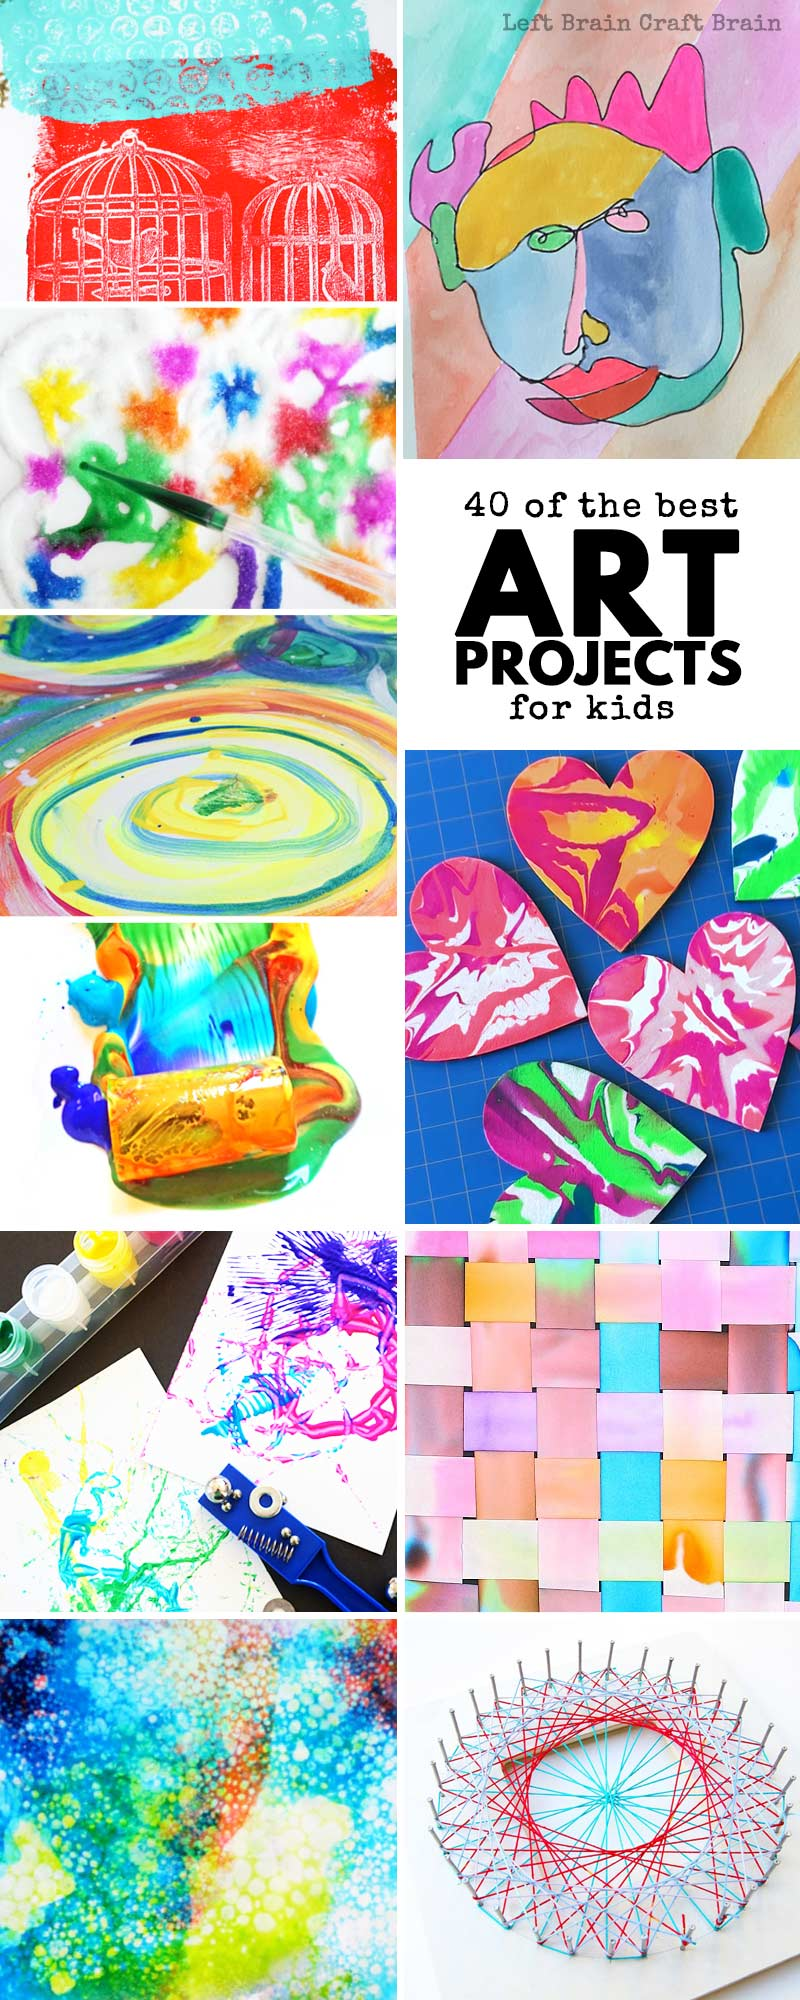 40 of the best art projects for kids left brain craft brain